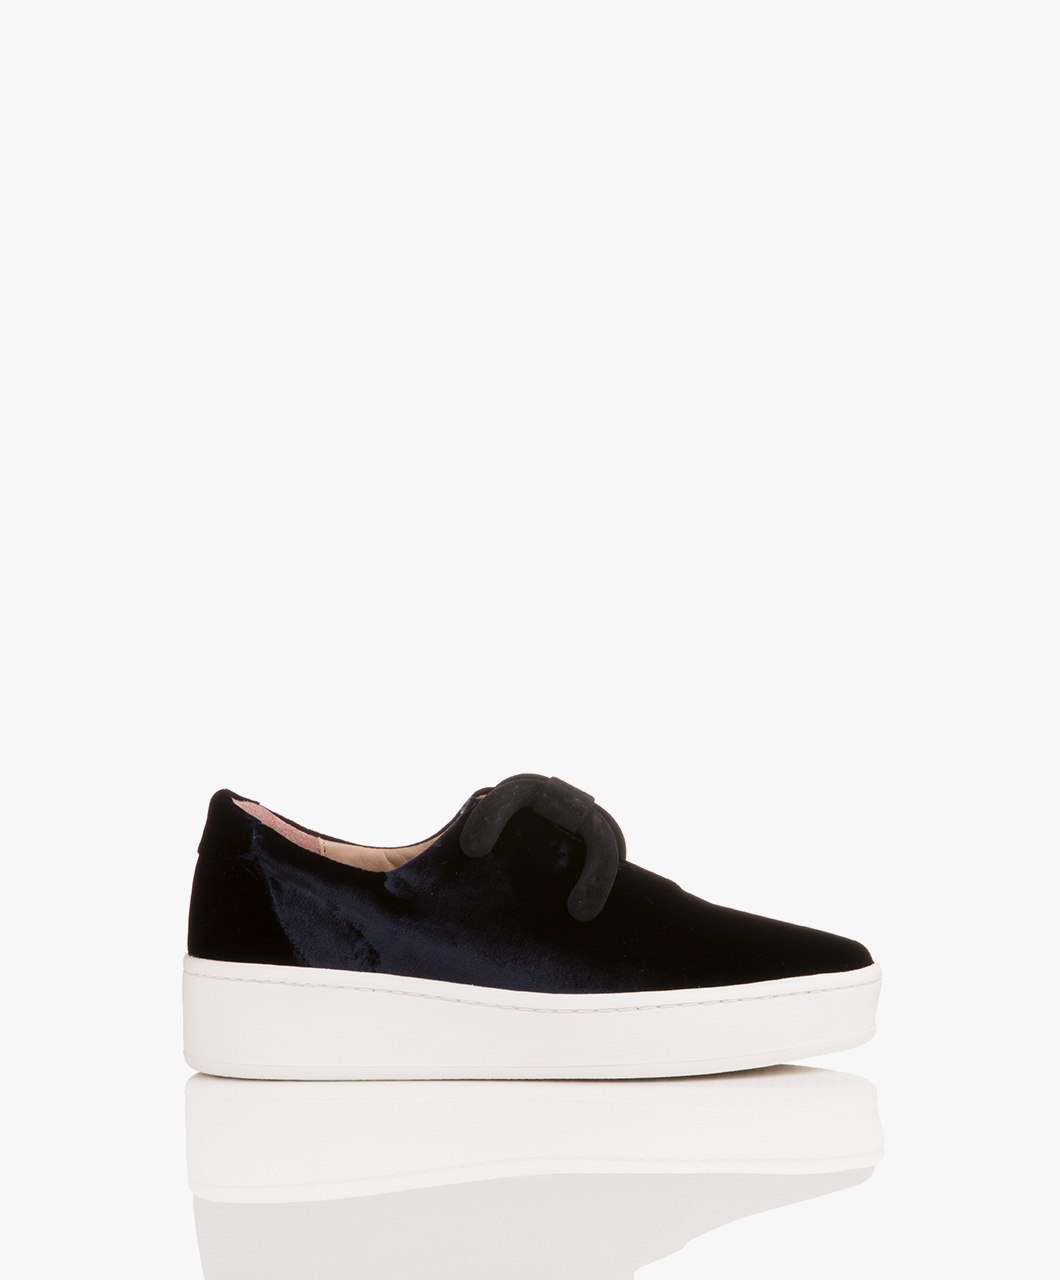 Afbeelding van An Hour And A Shower Sneakers Knot Laag in Donkerblauw Fluweel